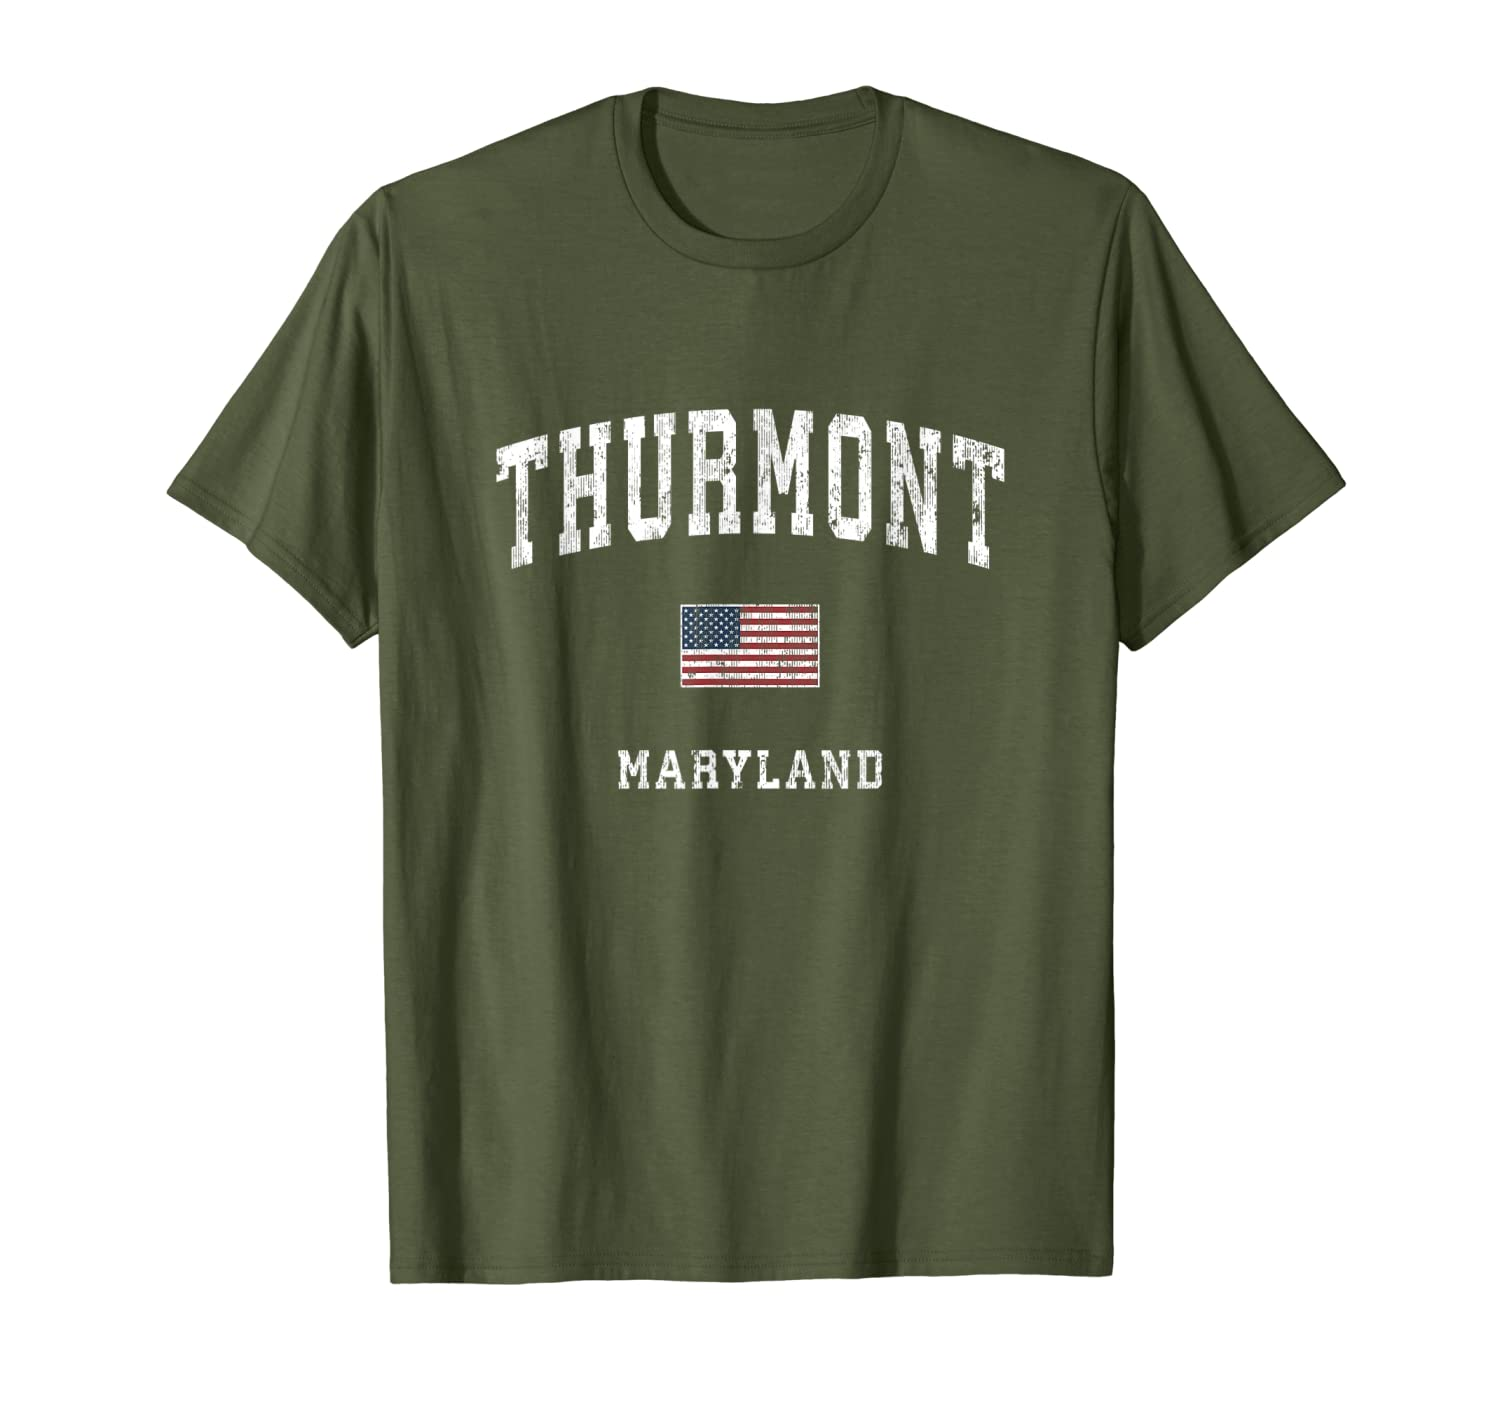 Thurmont Maryland MD Vintage American Flag Sports Design T-Shirt-ANZ